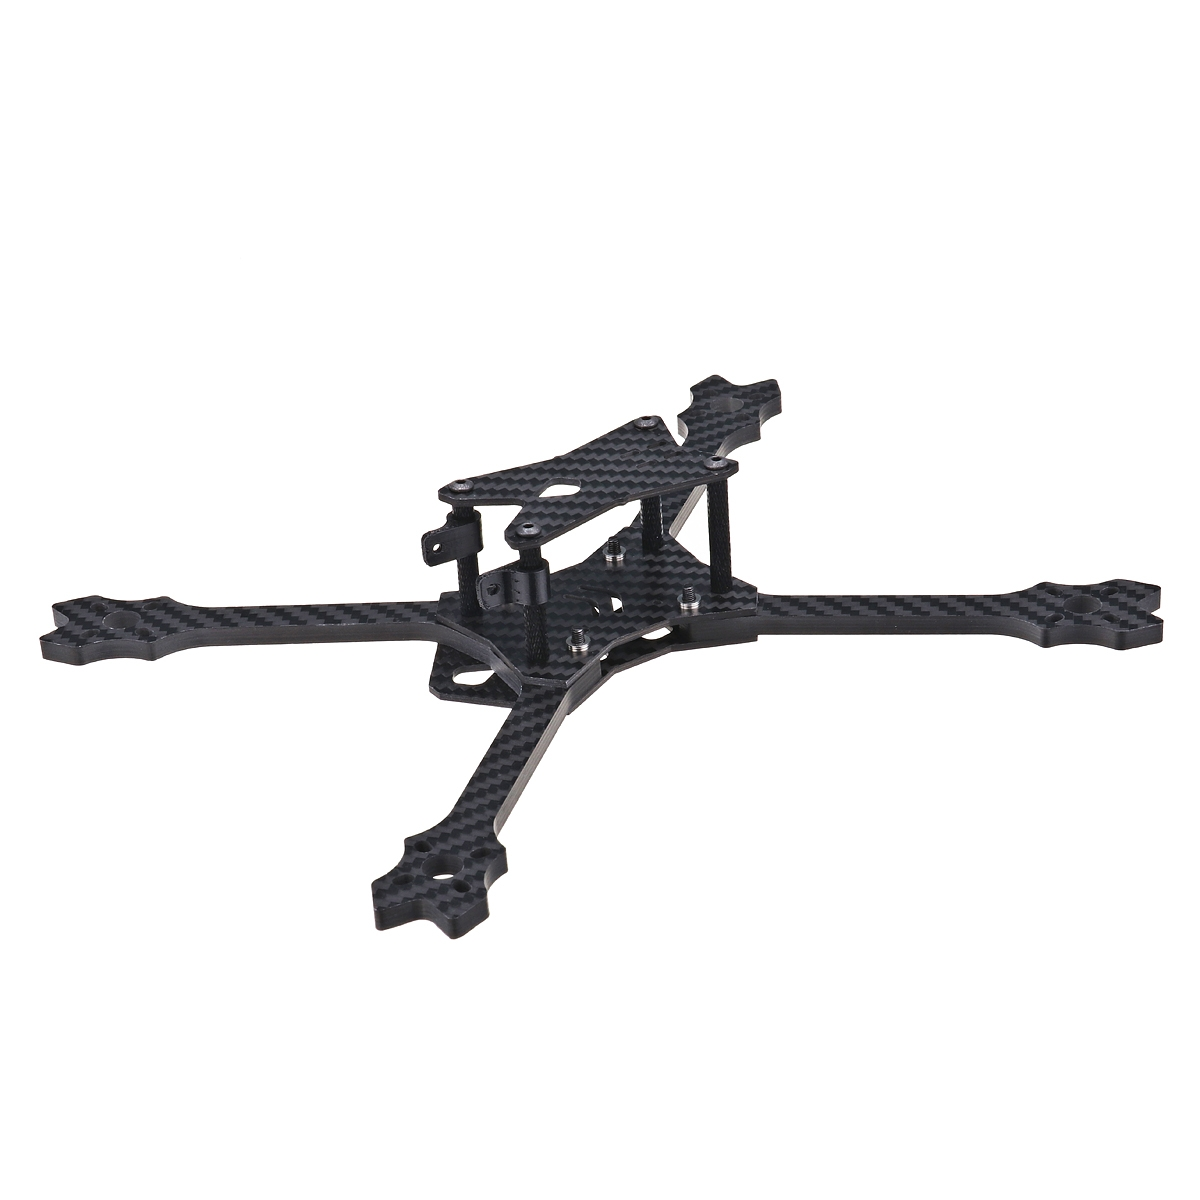 URUAV UF5 5 Inch 220mm Carbon Fiber FPV Racing Frame Kit 5mm Arm Plate for RC Drone